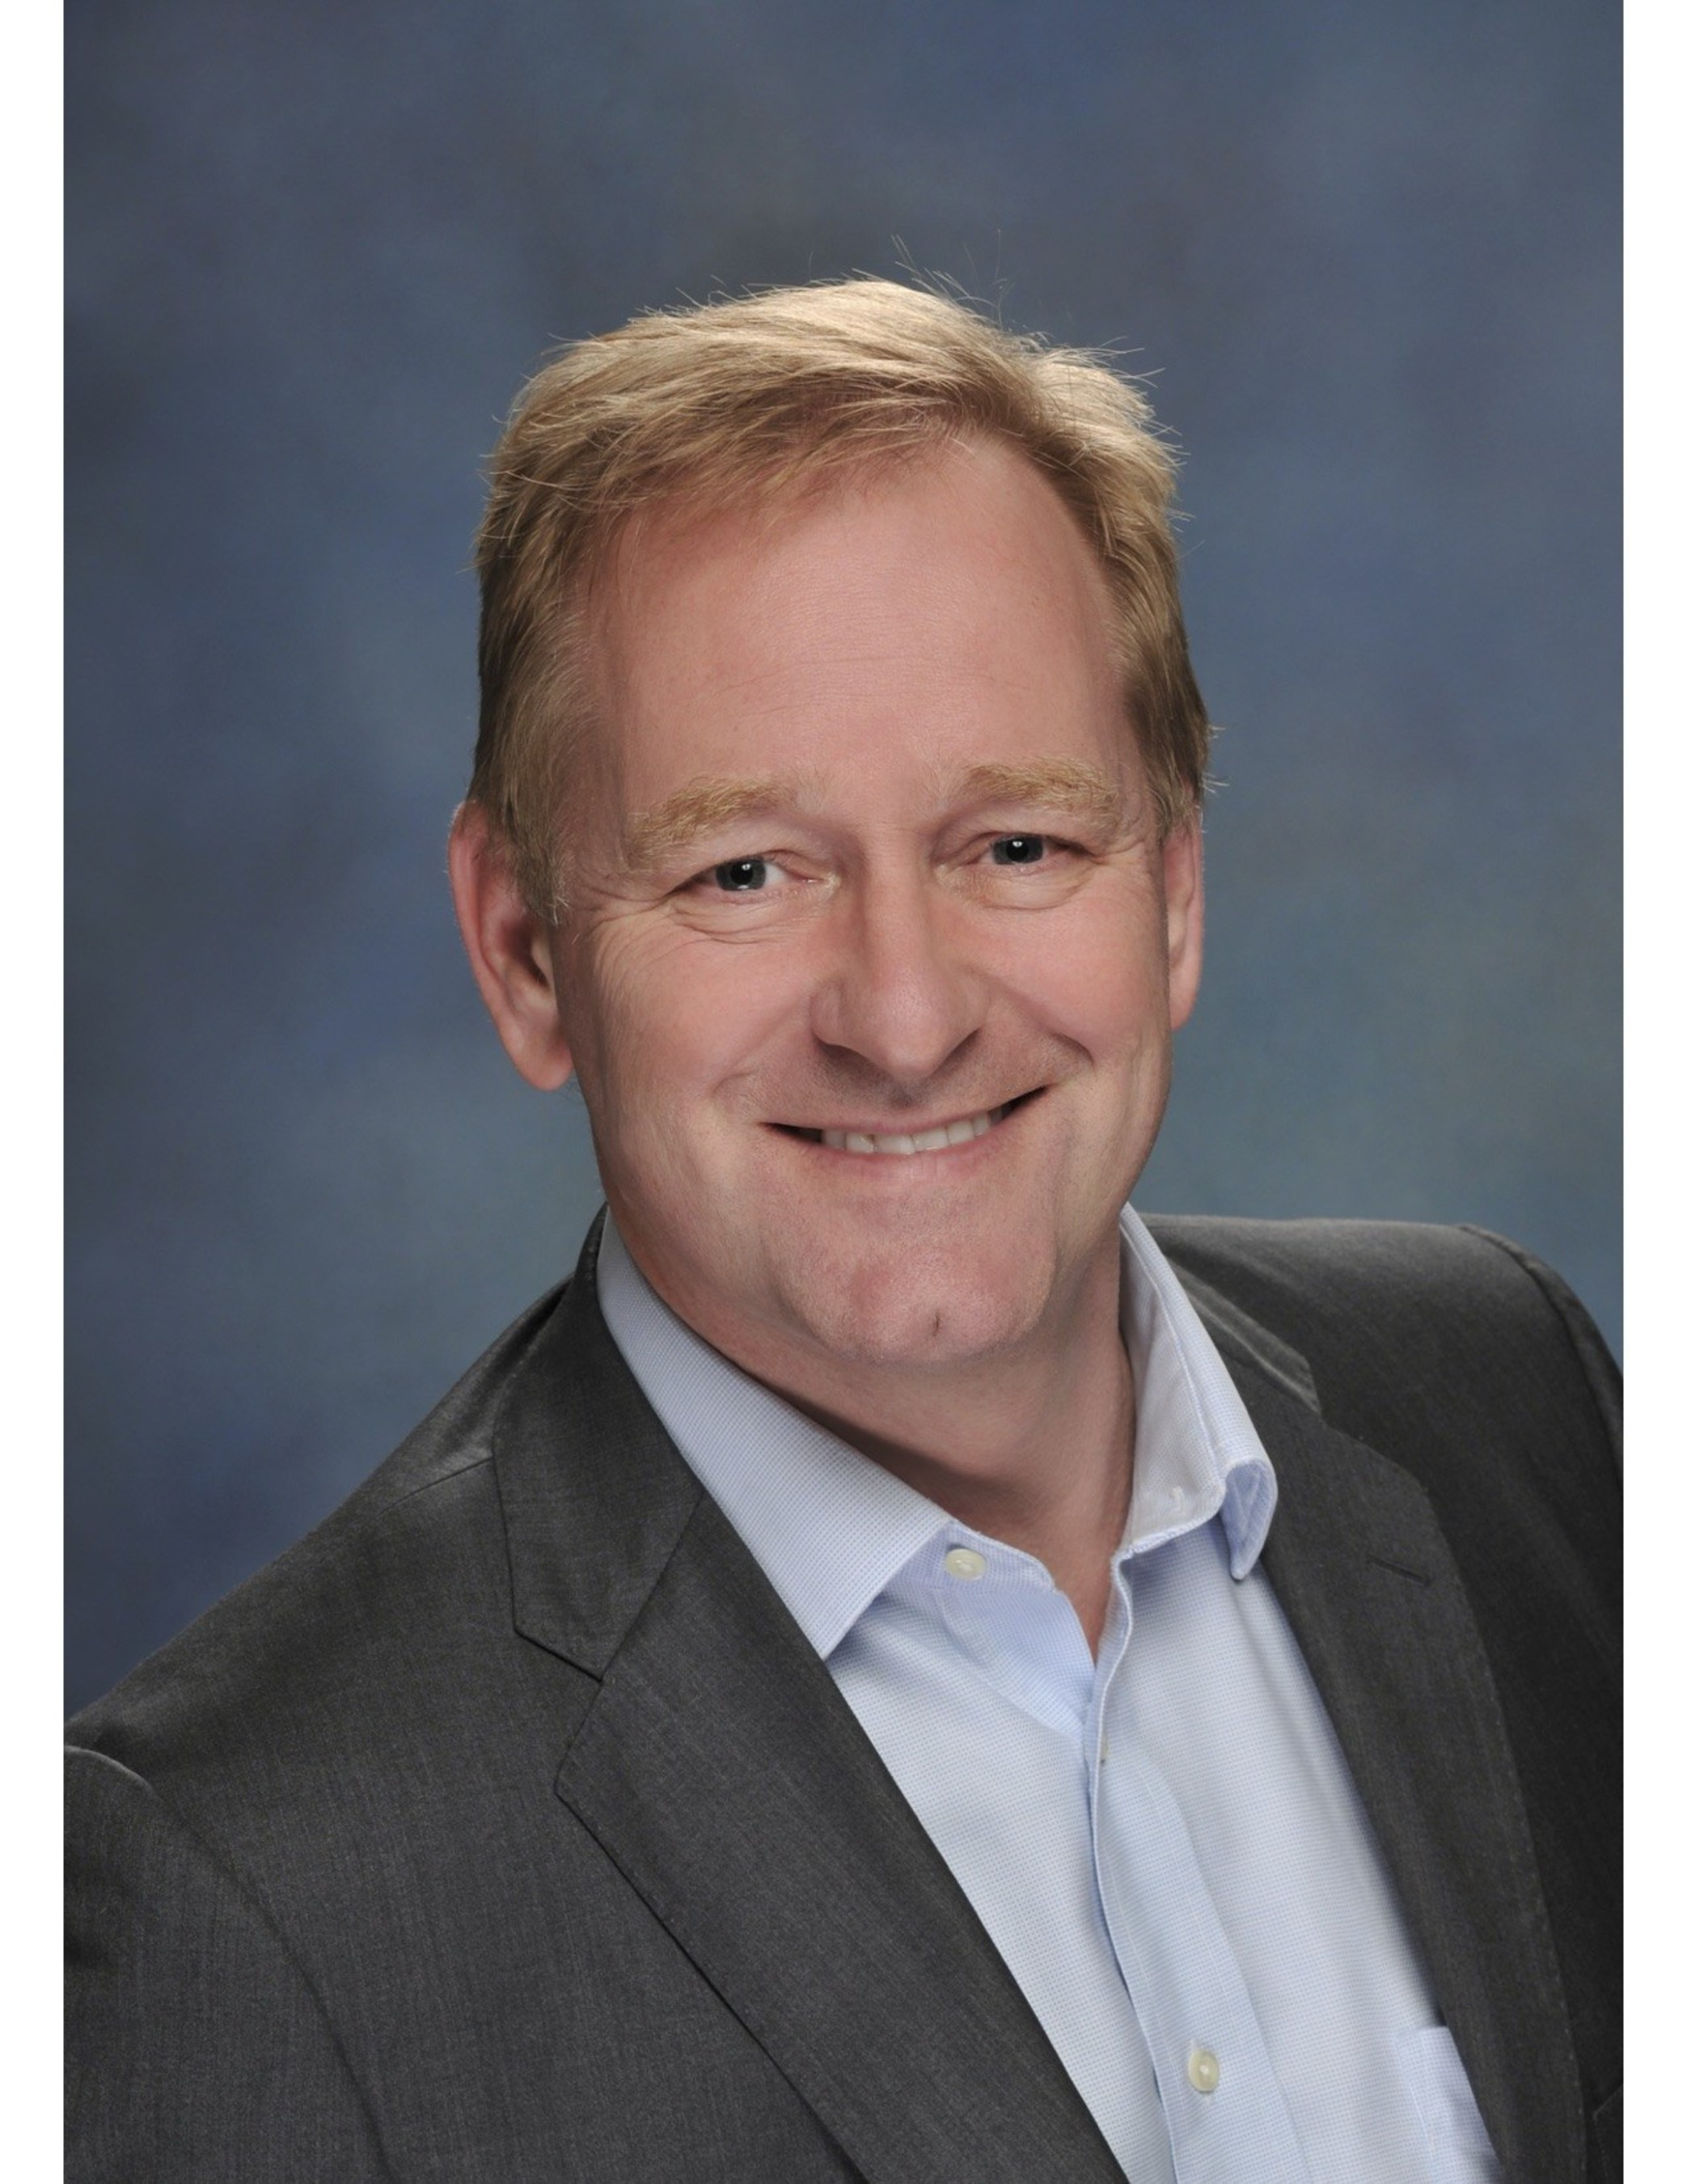 ShoreTel's Mark Roberts Named Top Midmarket IT Executive by The Channel Company and Midsize Enterprise Summit